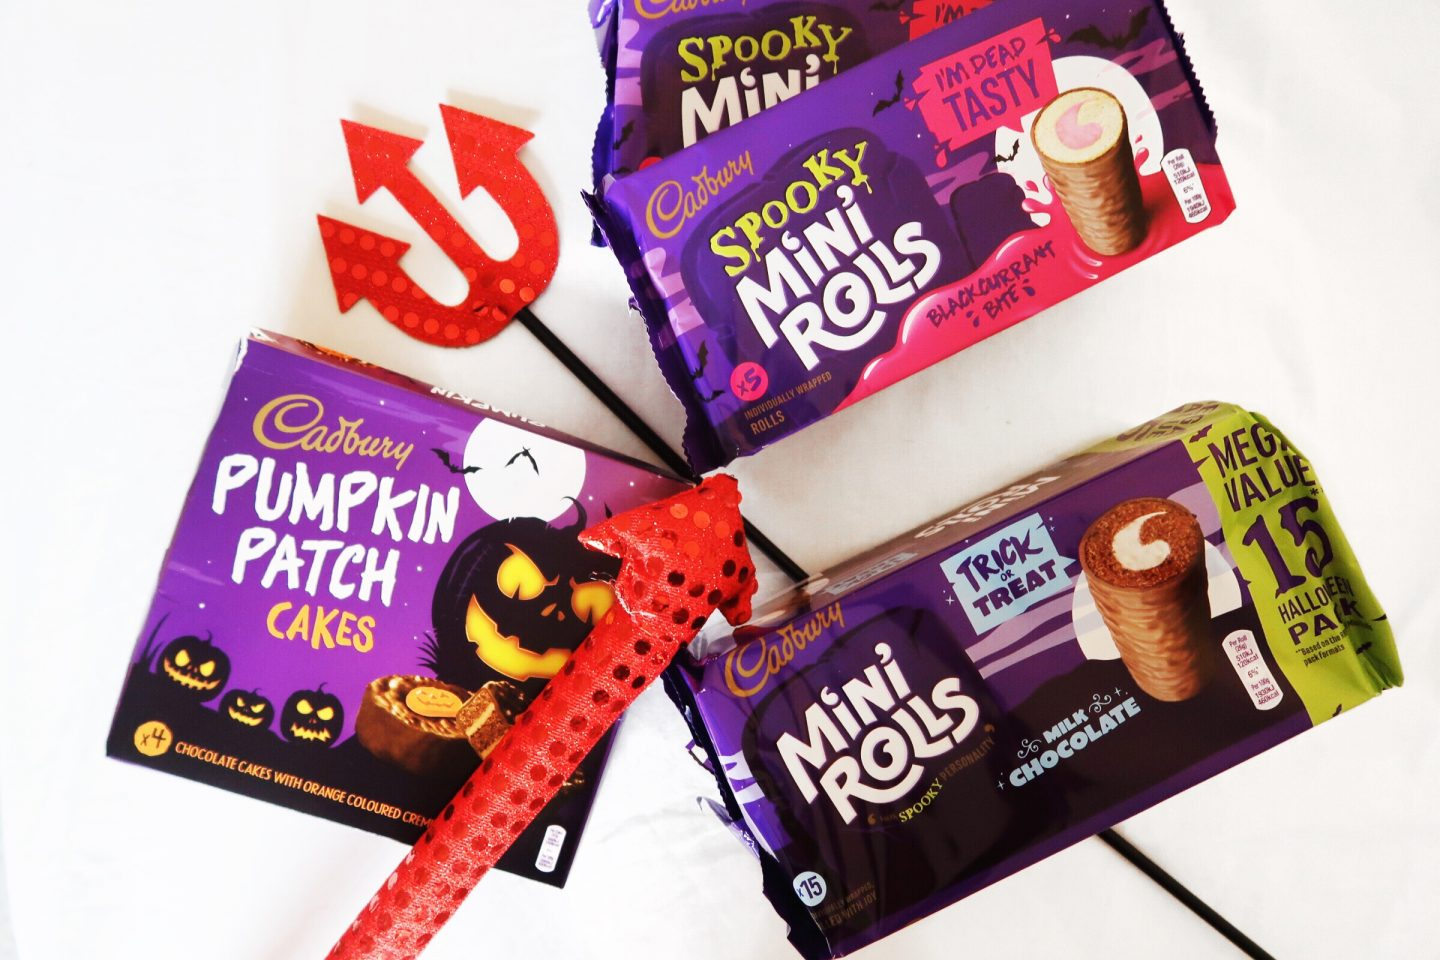 Fang-tastic Halloween Treats From Cadbury Cakes